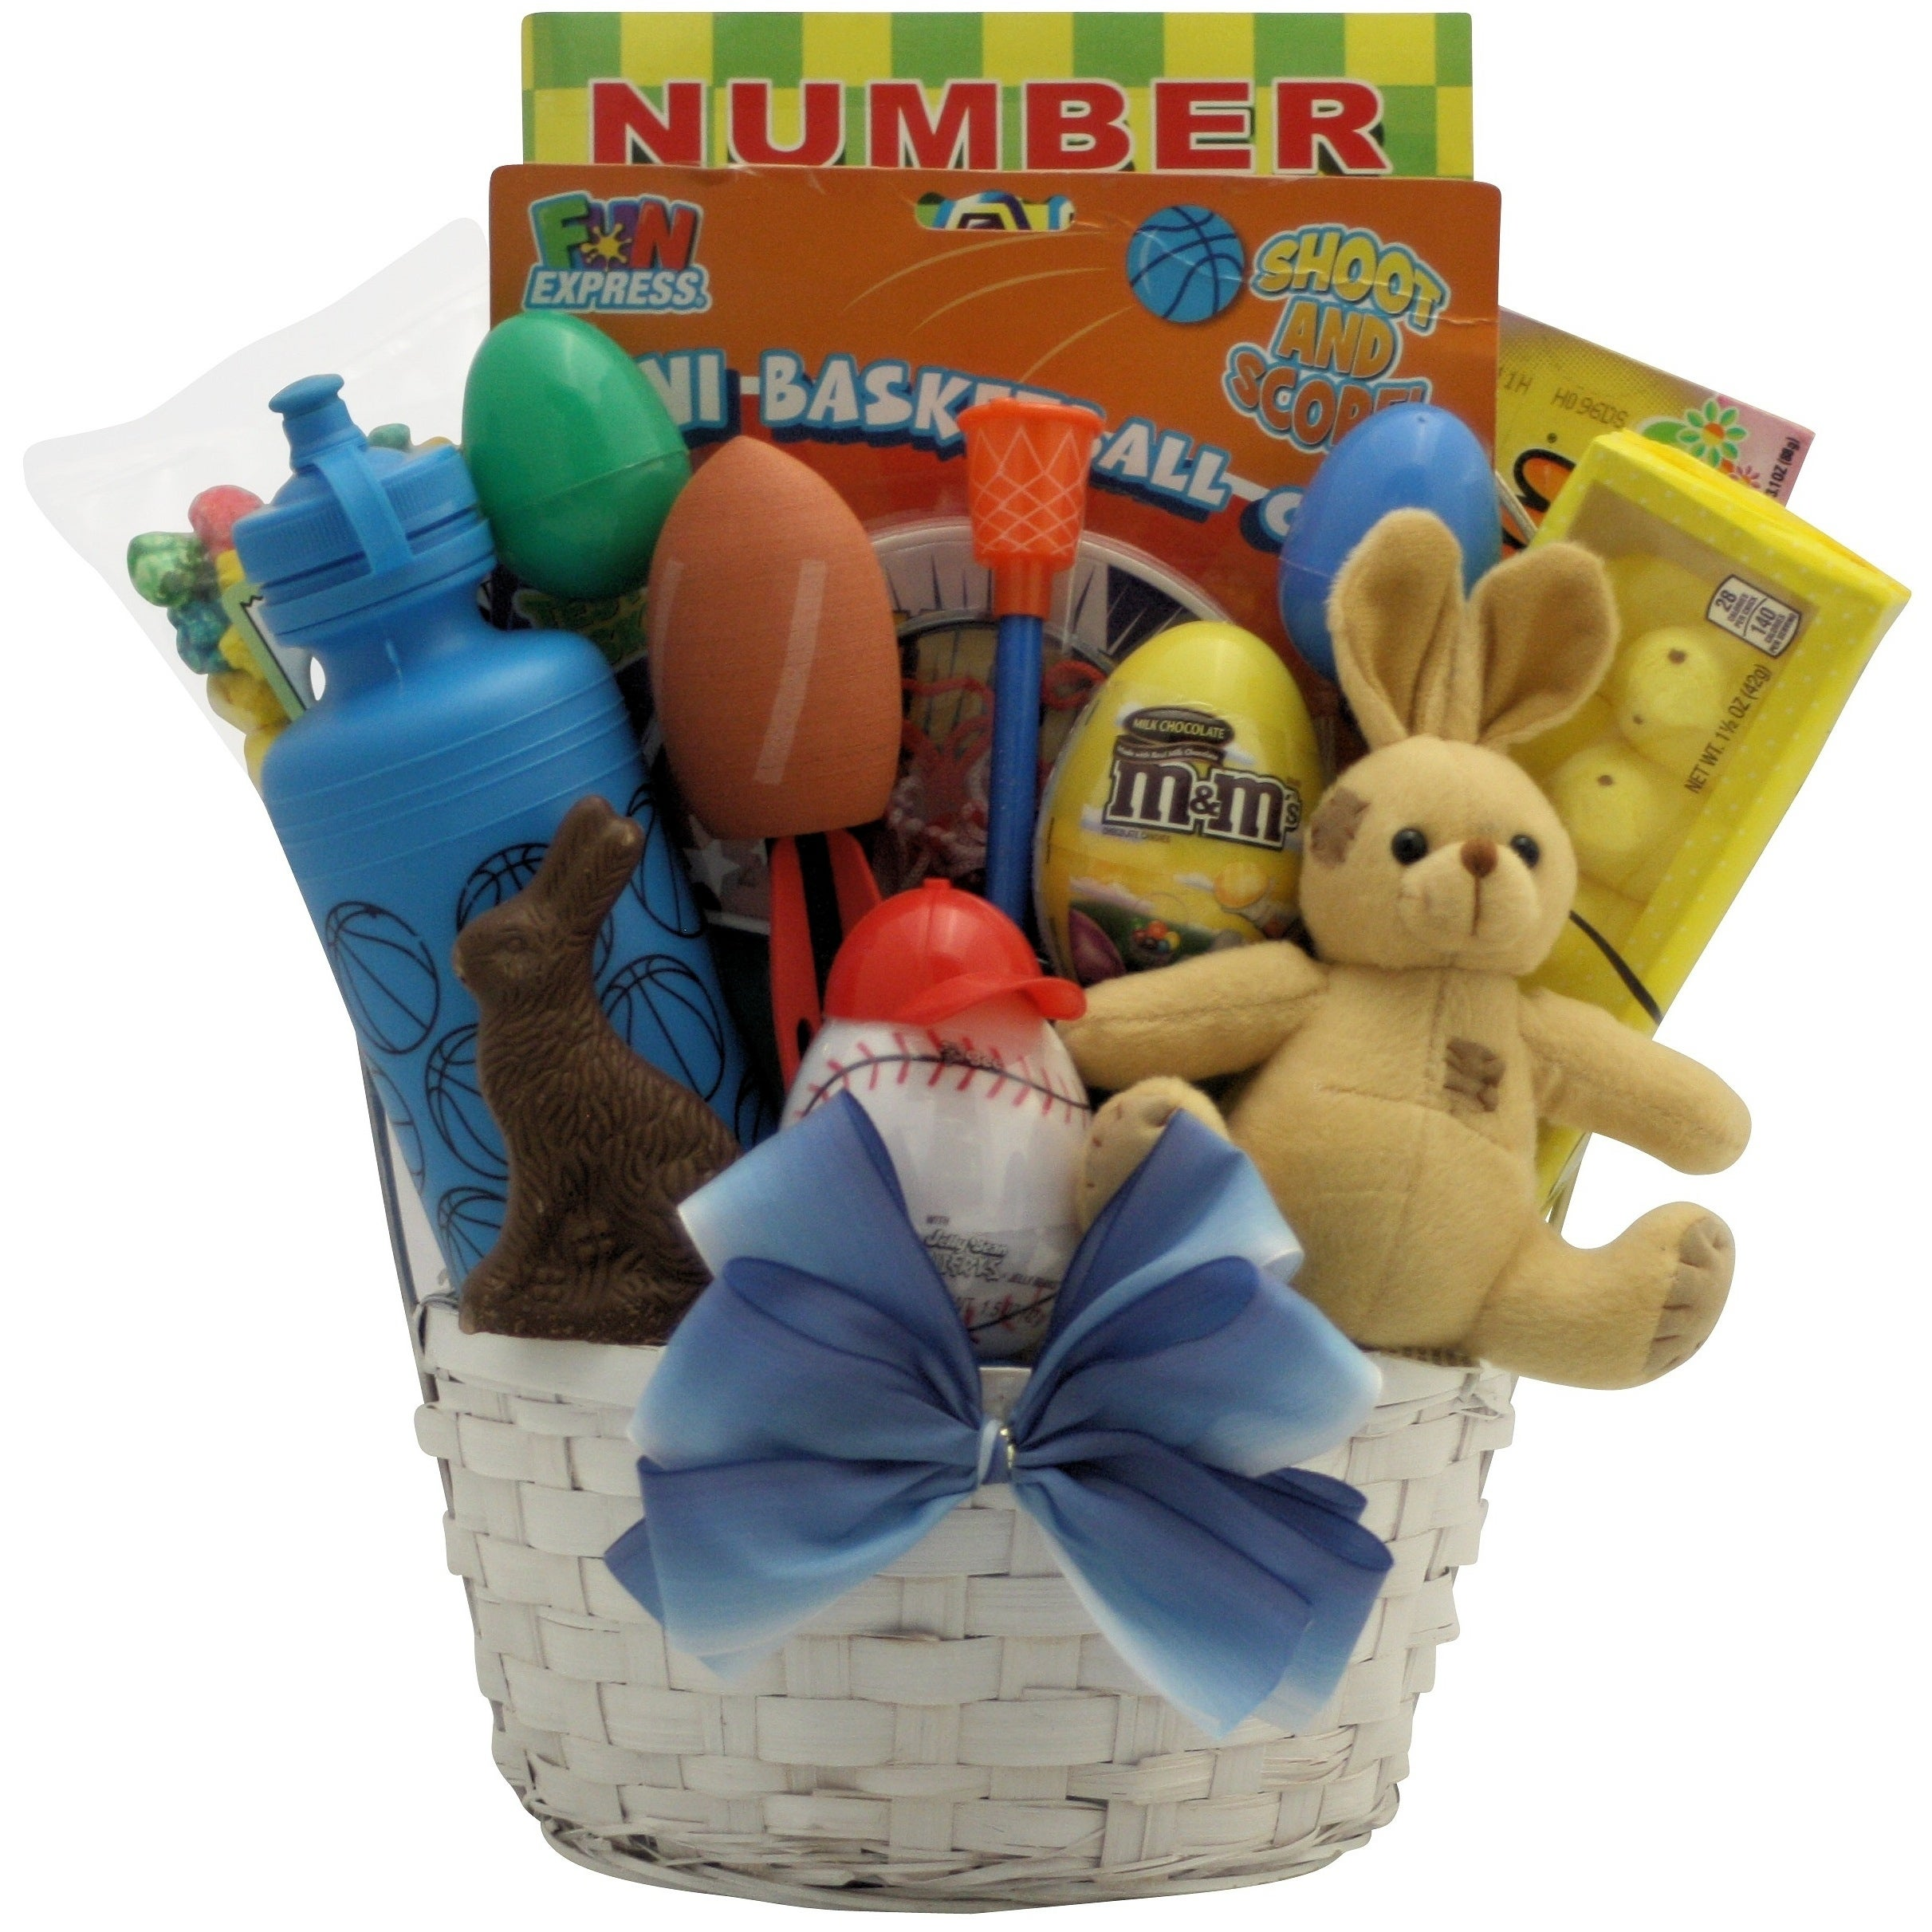 Shop Egg-streme Boyu0027s Sports Themed Easter Gift Basket - Free Shipping Today - Overstock - 14330764  sc 1 st  Overstock.com & Shop Egg-streme Boyu0027s Sports Themed Easter Gift Basket - Free ...